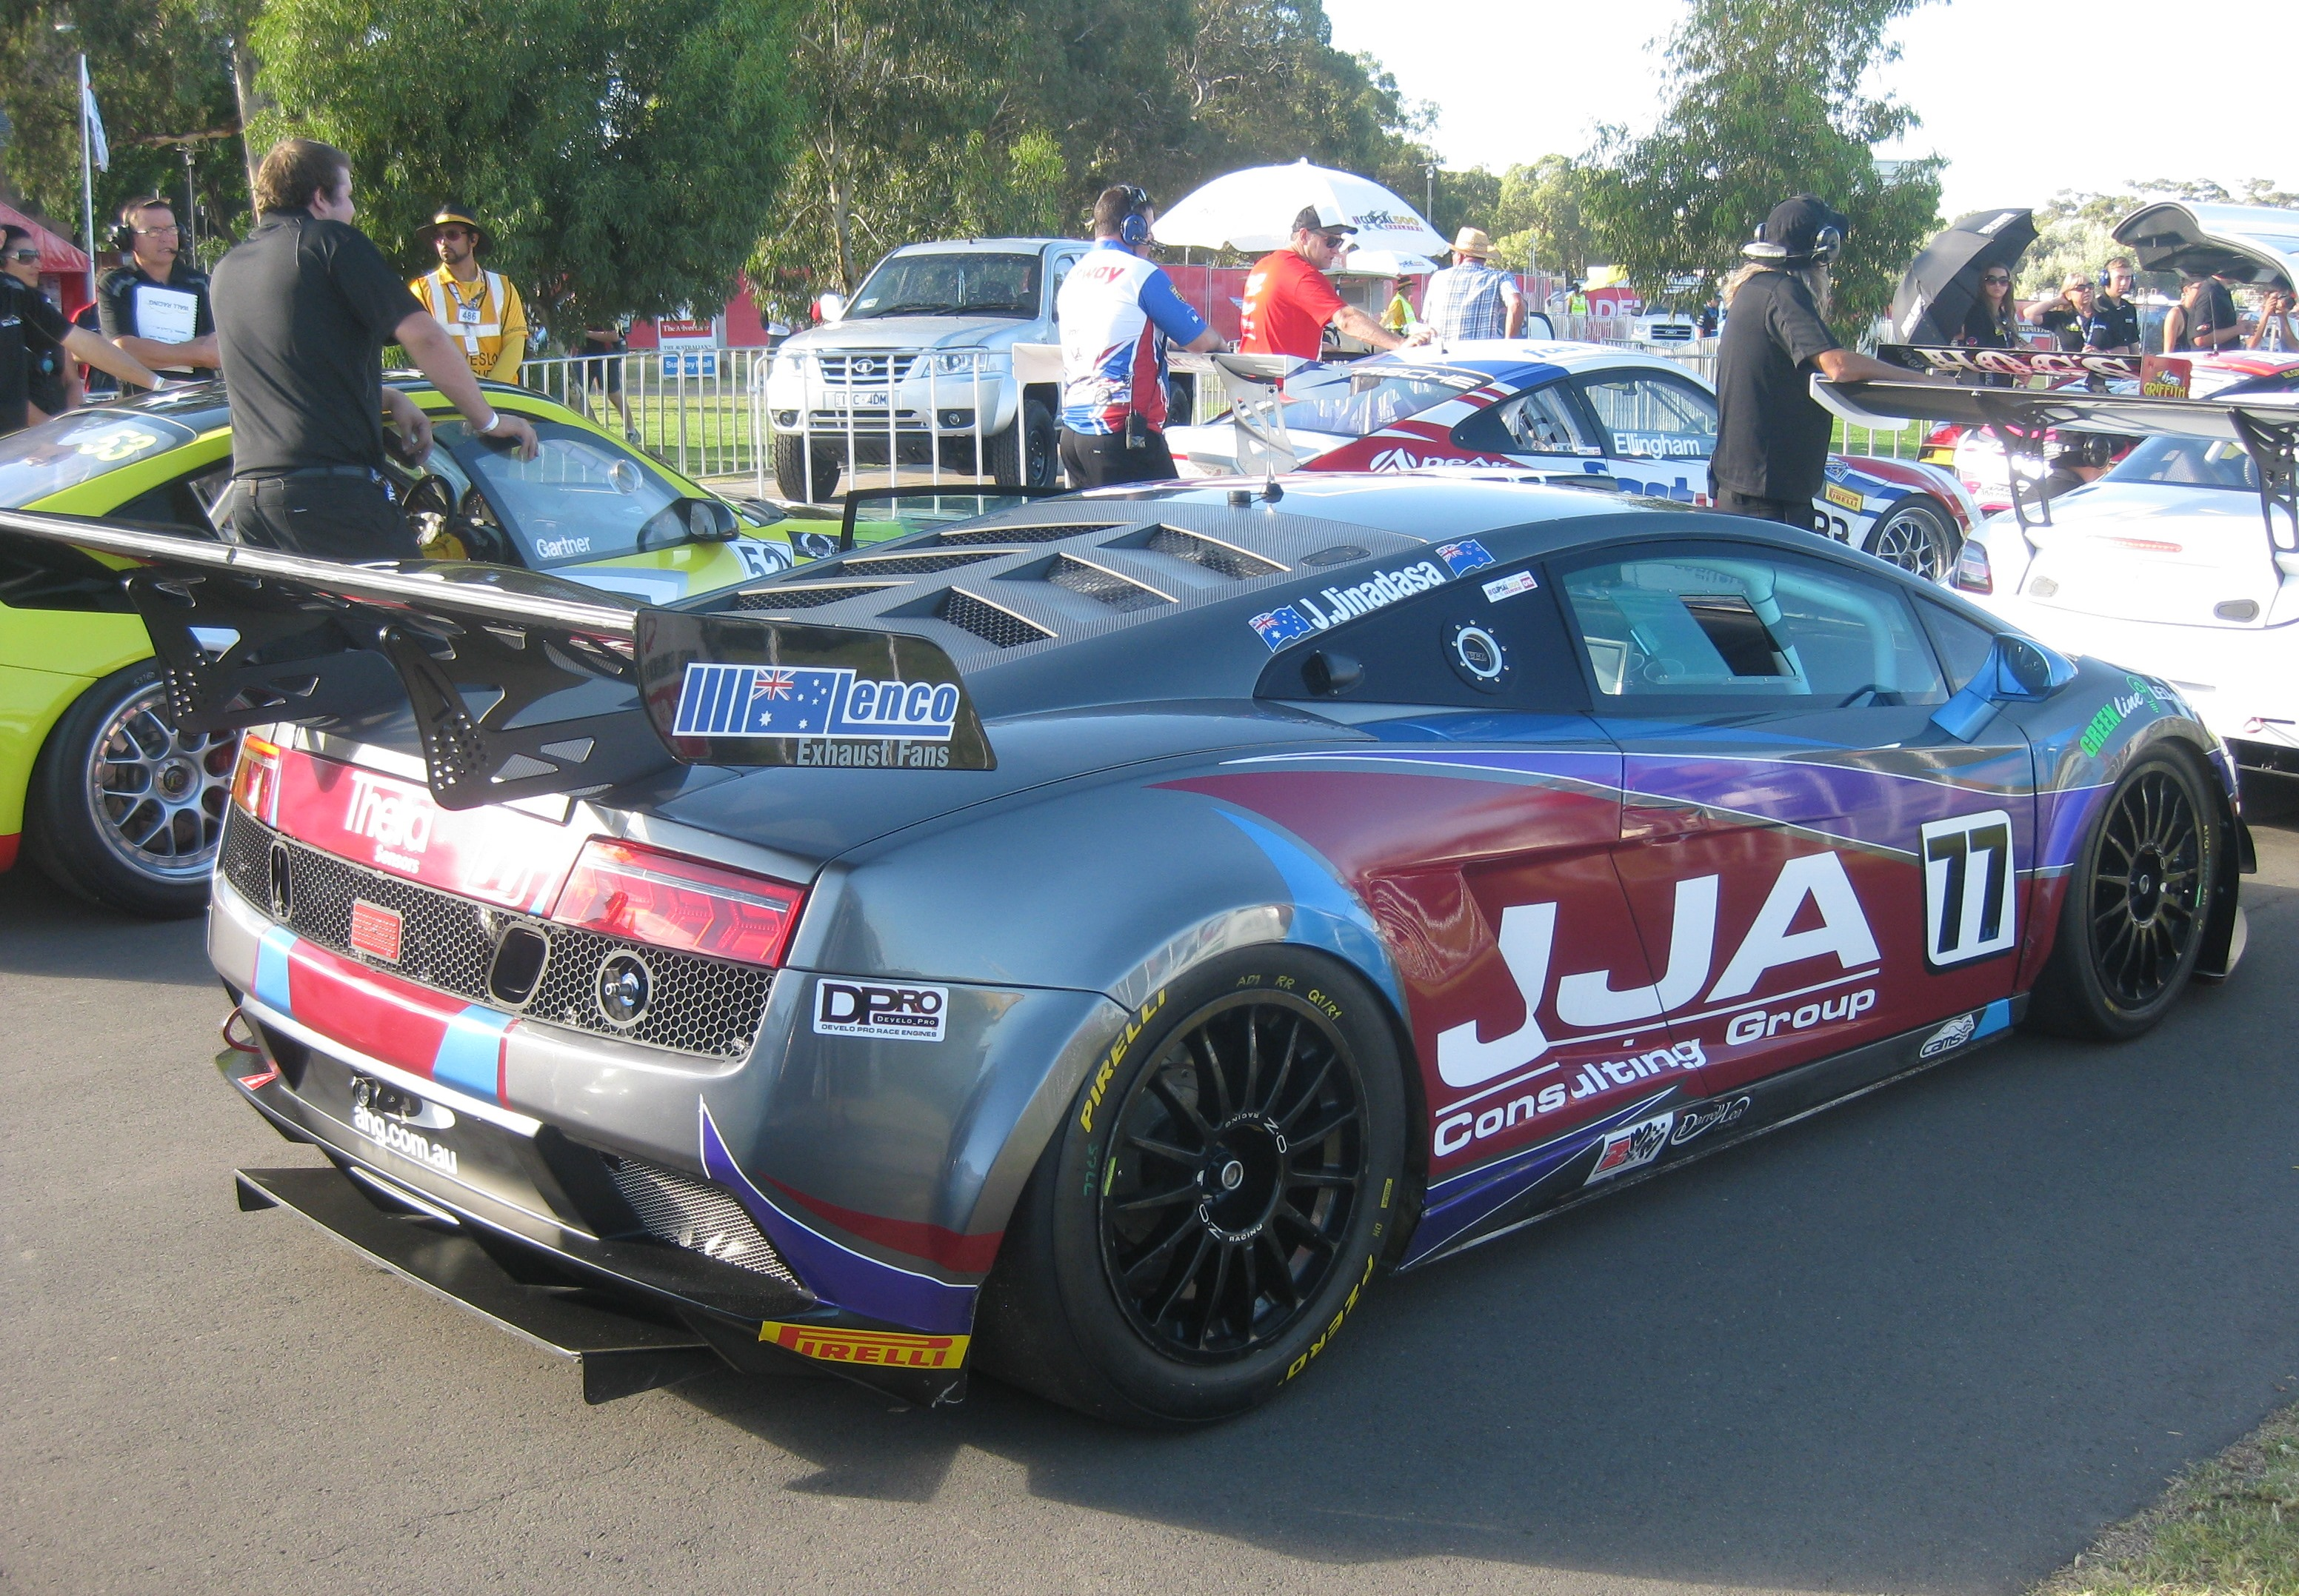 File:Lamborghini Gallardo LP560 4 Of Jan Jinadasa.JPG